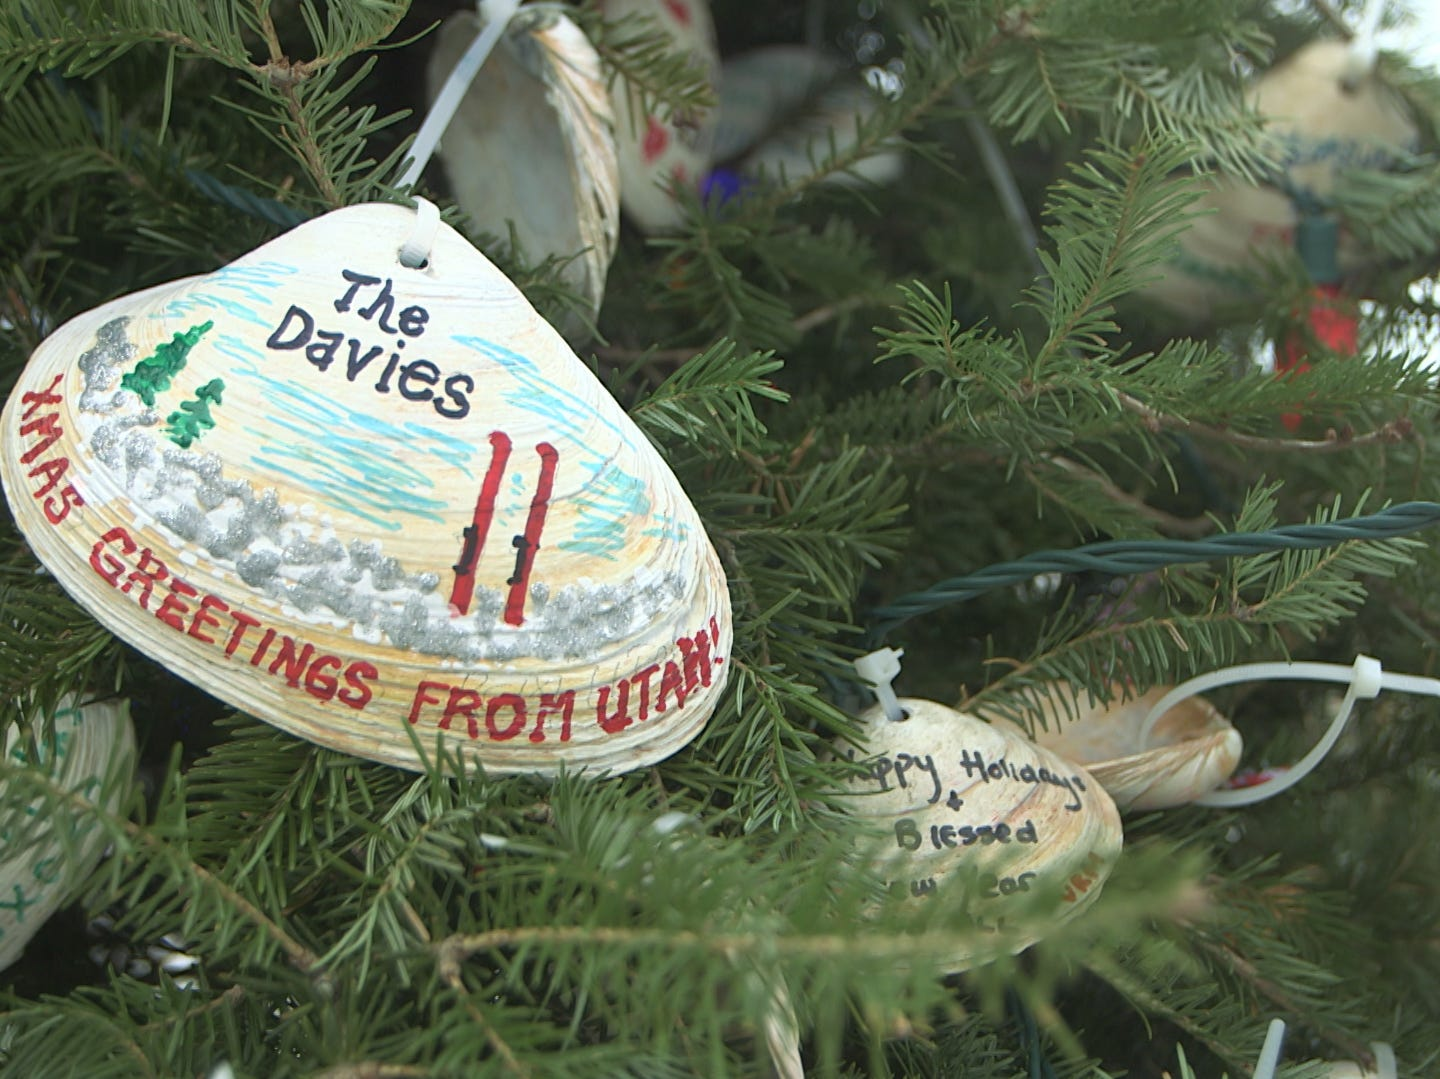 Locals use clam shells as ornaments to decorate the Normandy Beach Christmas tree